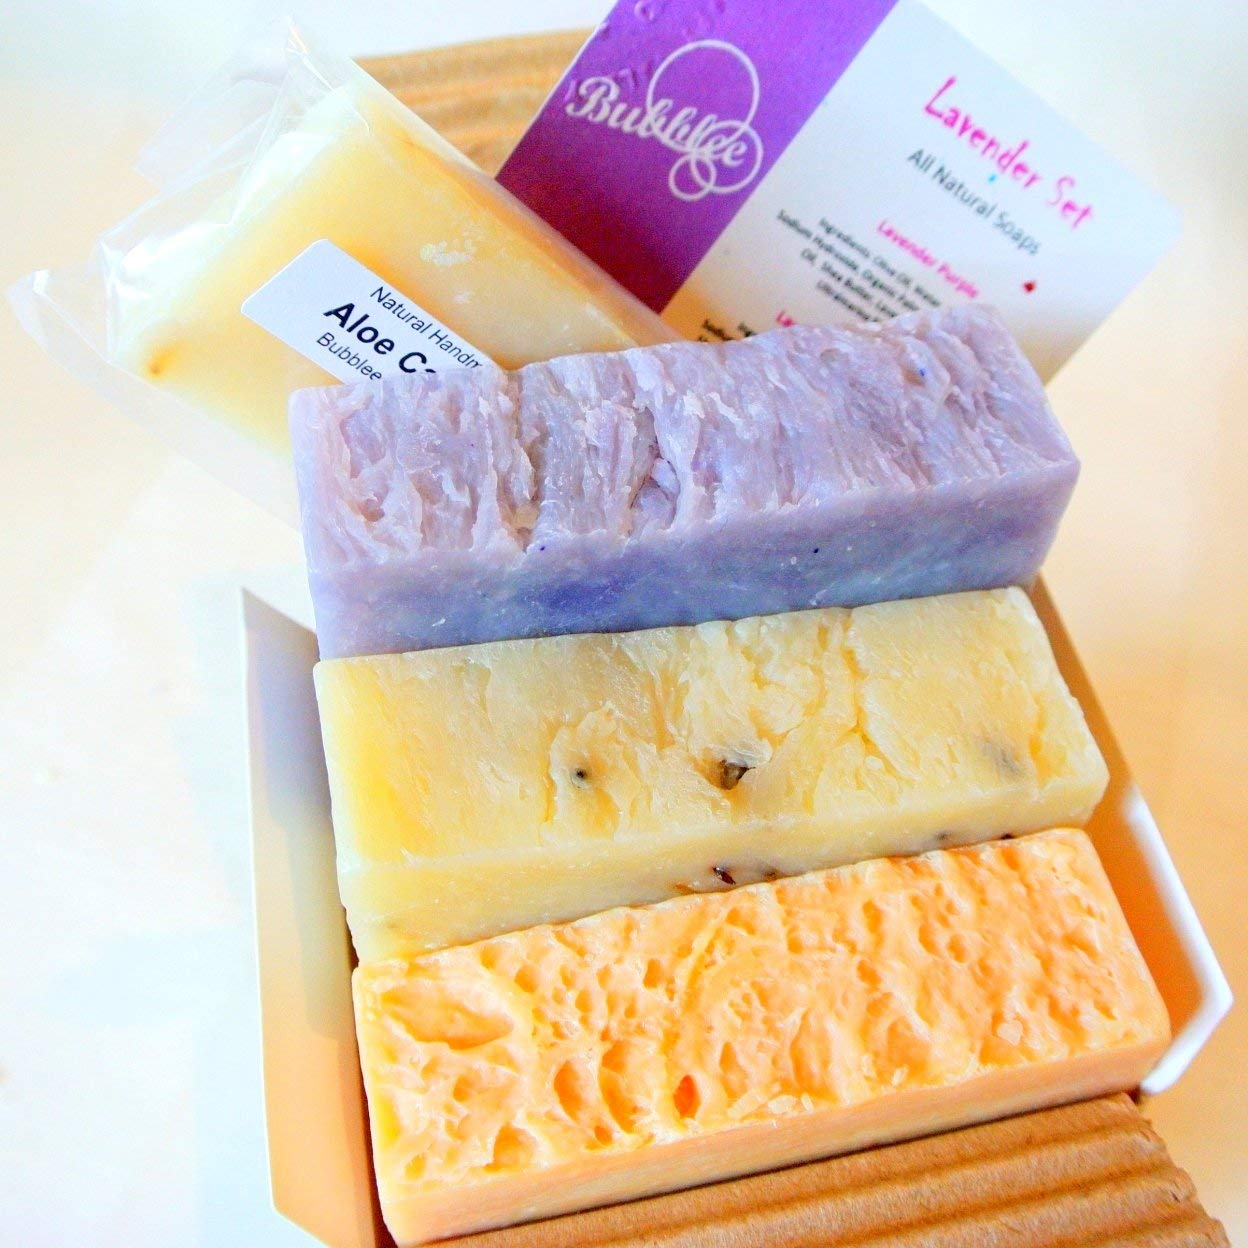 Handmade soaps smell more natural and work better than more commercialized soaps. This set contains soap other than lavender, so you can just repackage.